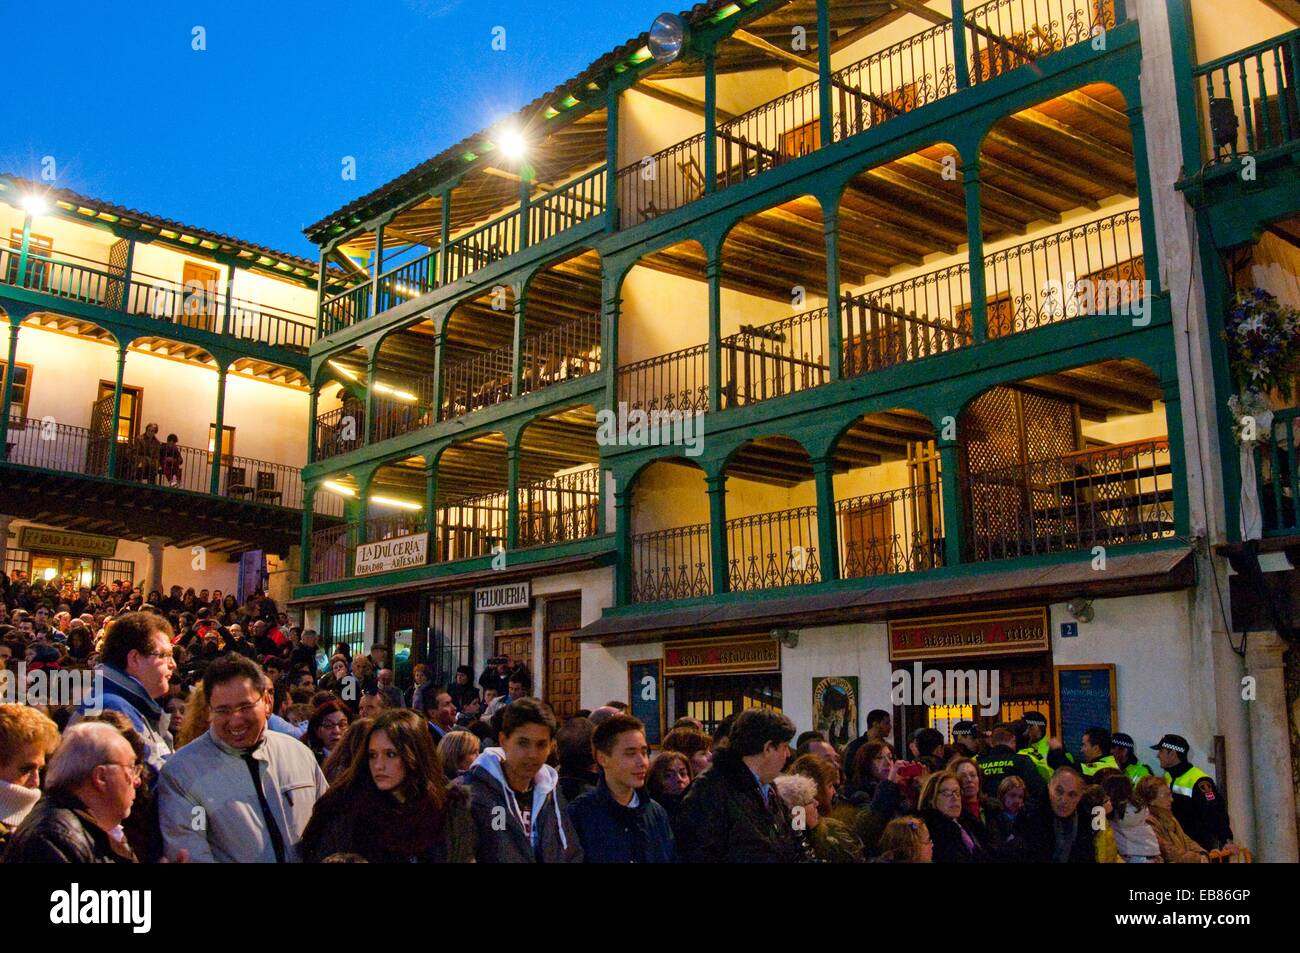 People in the Main Square before the Passion of Chinchon performance, night view. Chinchon, Madrid province, Spain. Stock Photo